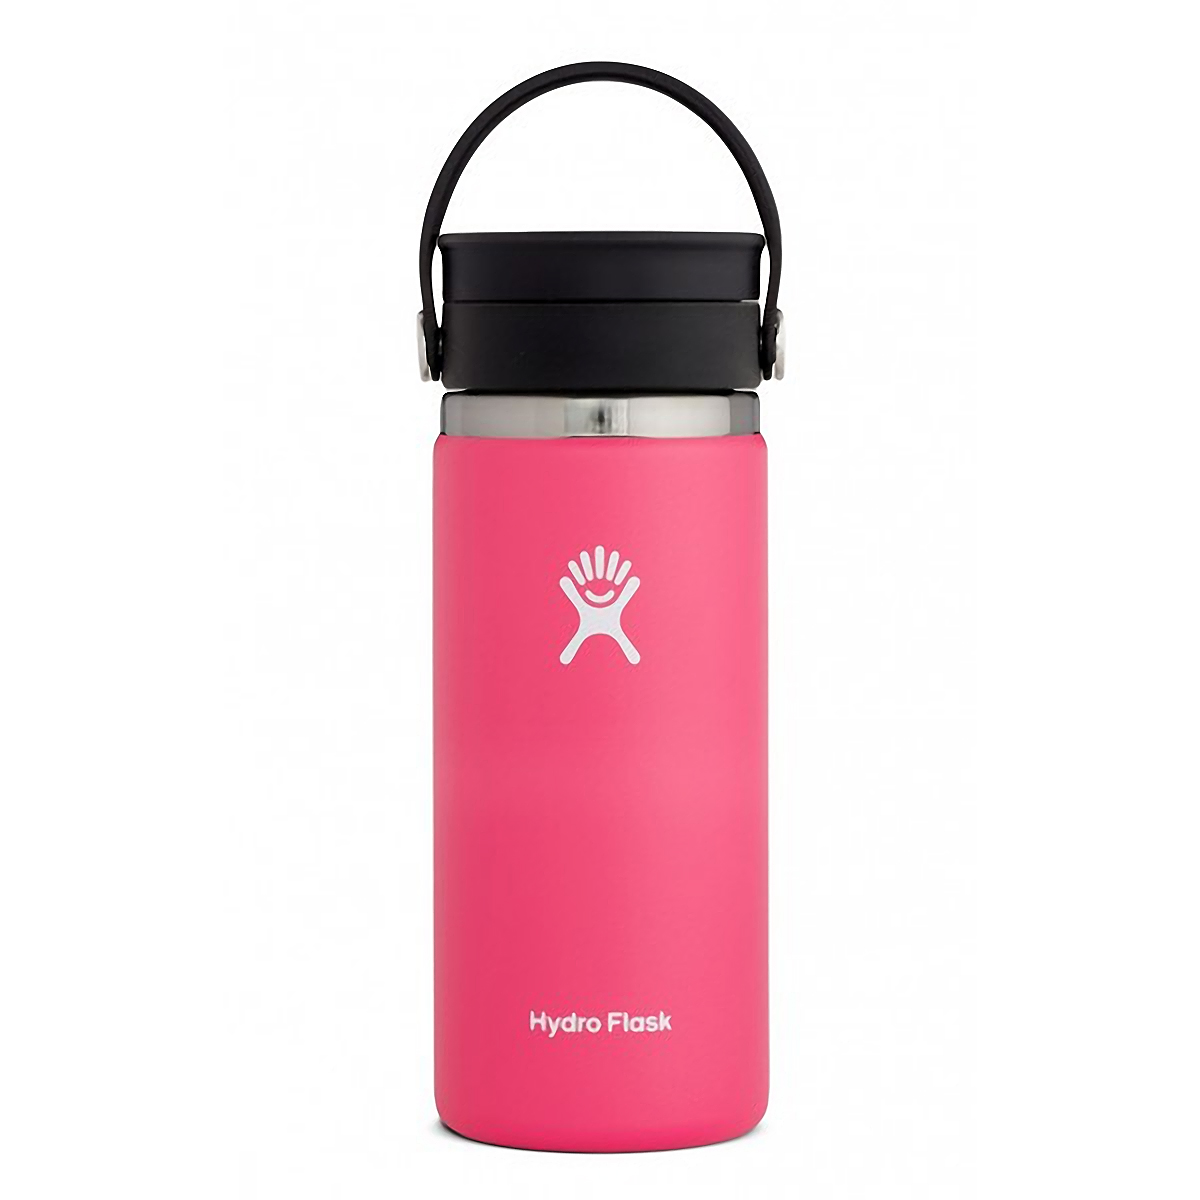 Hydro Flask 16 oz Coffee with Flex Sip Lid, , large, image 1